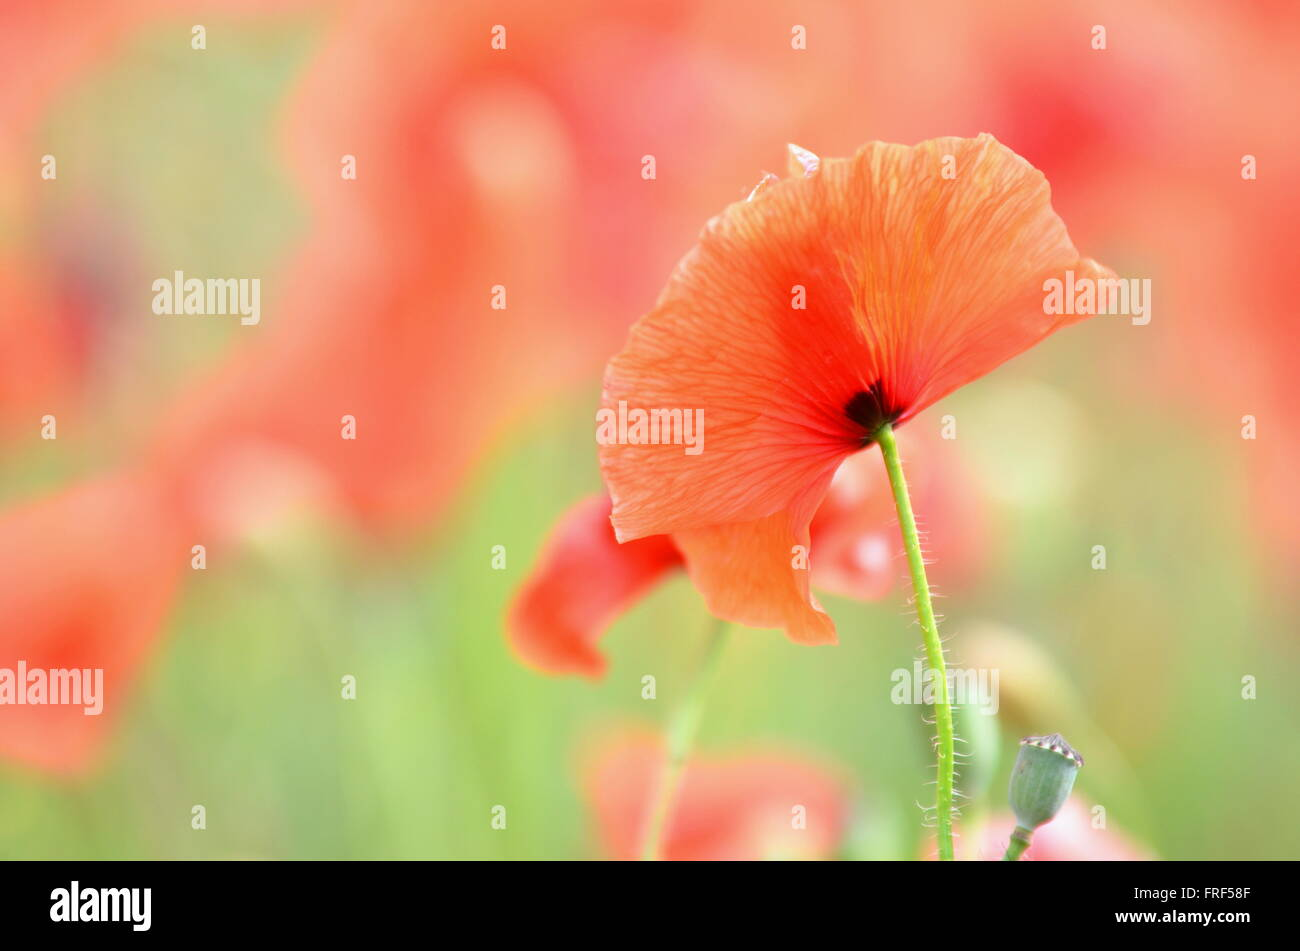 Delicate And Beautiful Poppy Flowers On A Field Stock Photo